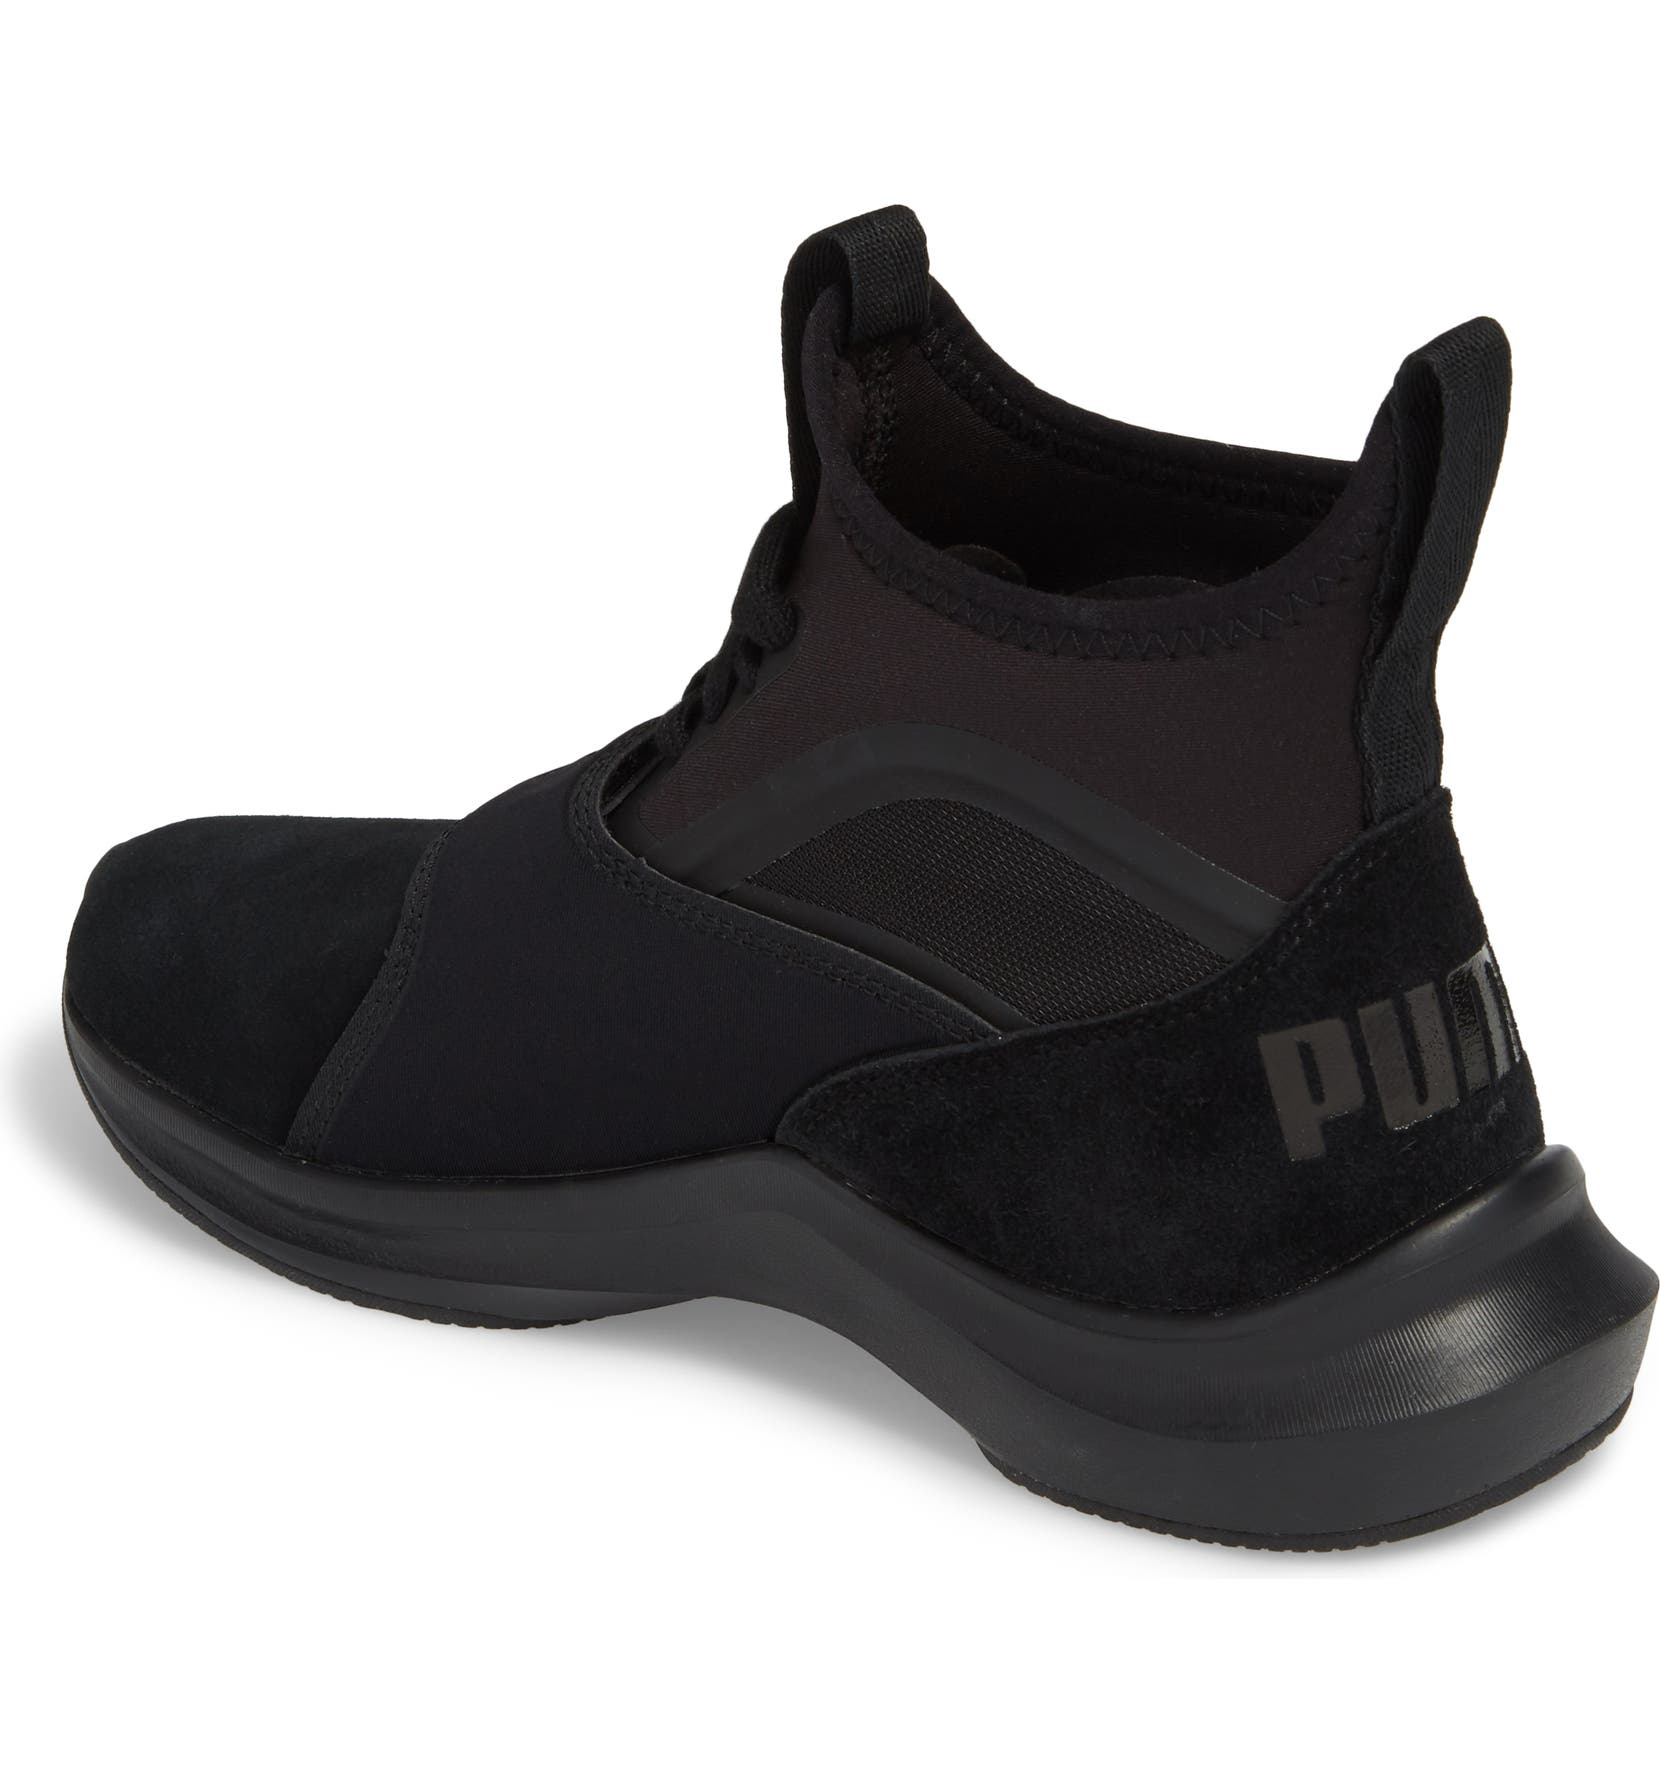 19be3895134 PUMA Phenom High Top Training Shoe (Women)